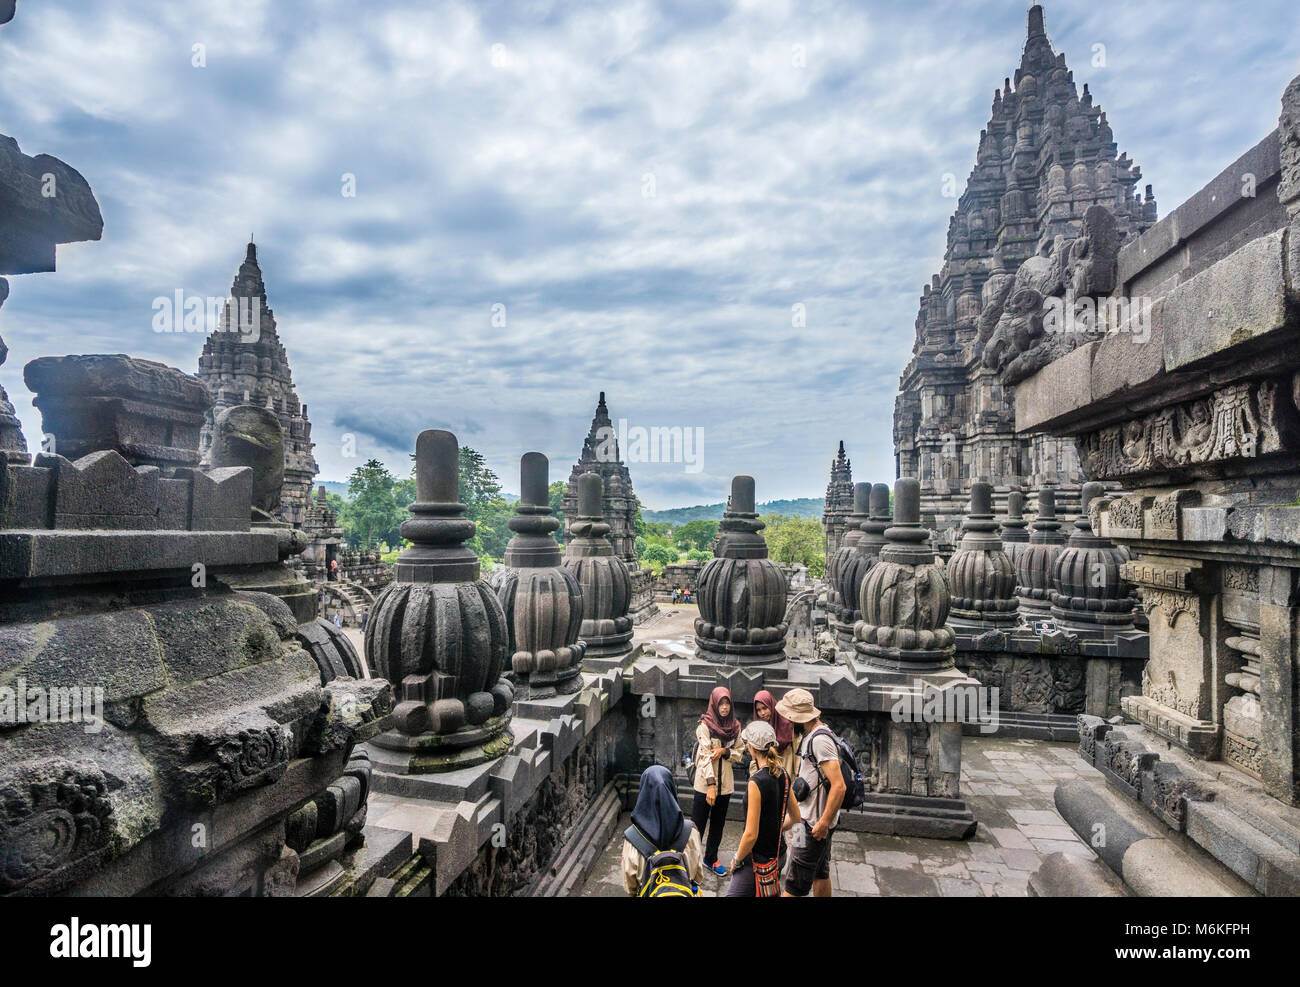 Indonesia, Central Java, visitors explore the bas-relief galleries along the balustrades of the Shiva temple at - Stock Image